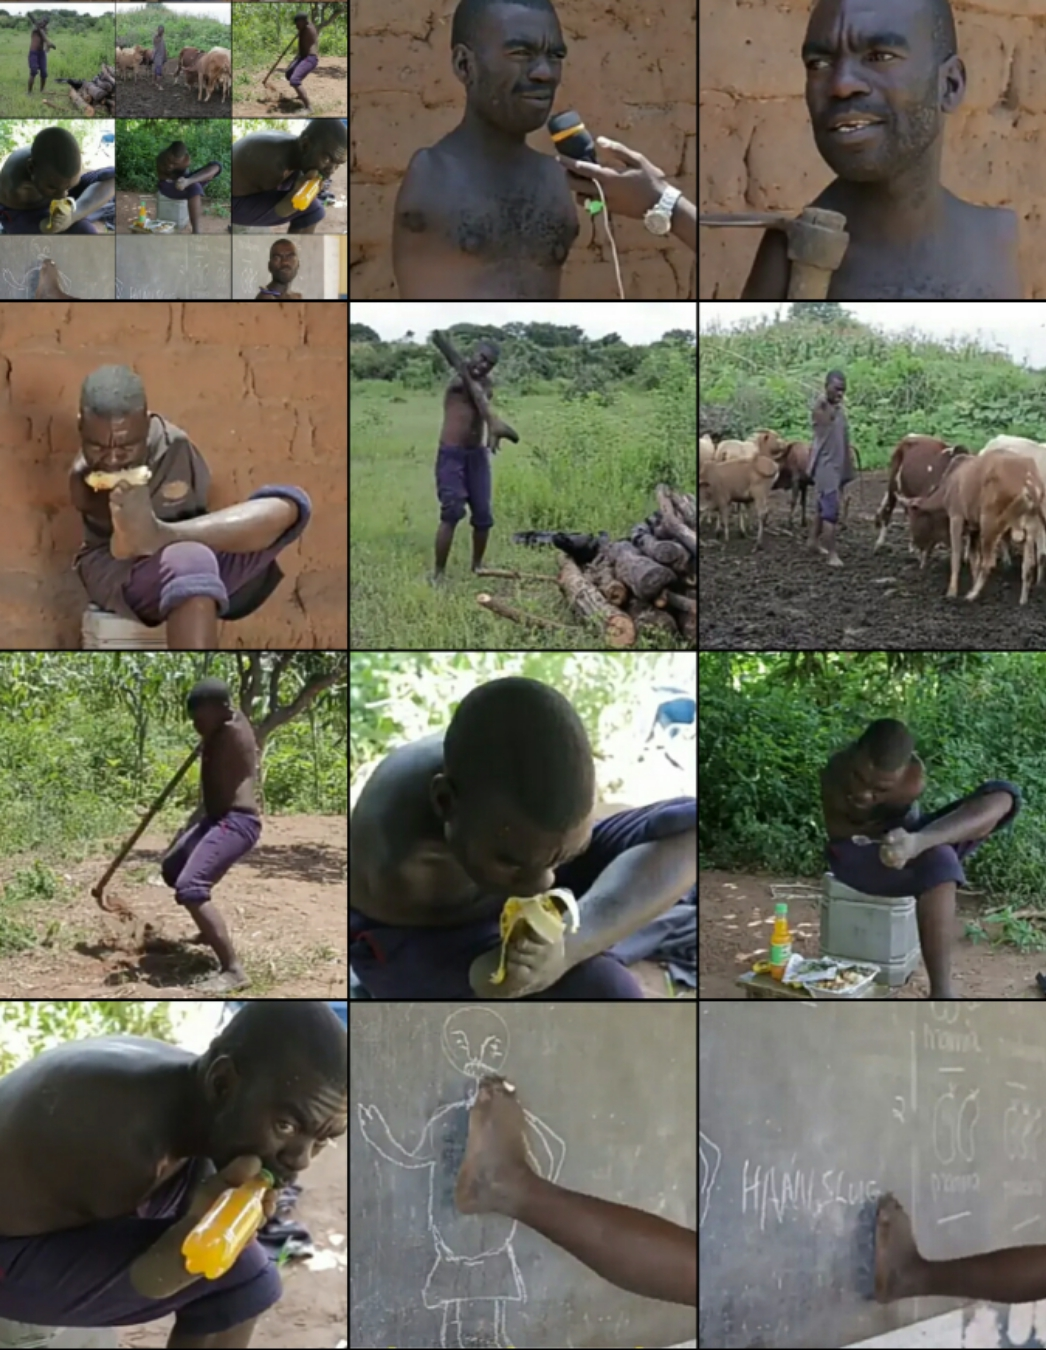 I was Born Without Hands, my Wife and Son Left me so i Farm & Fish to Fend for my Mother & Myself